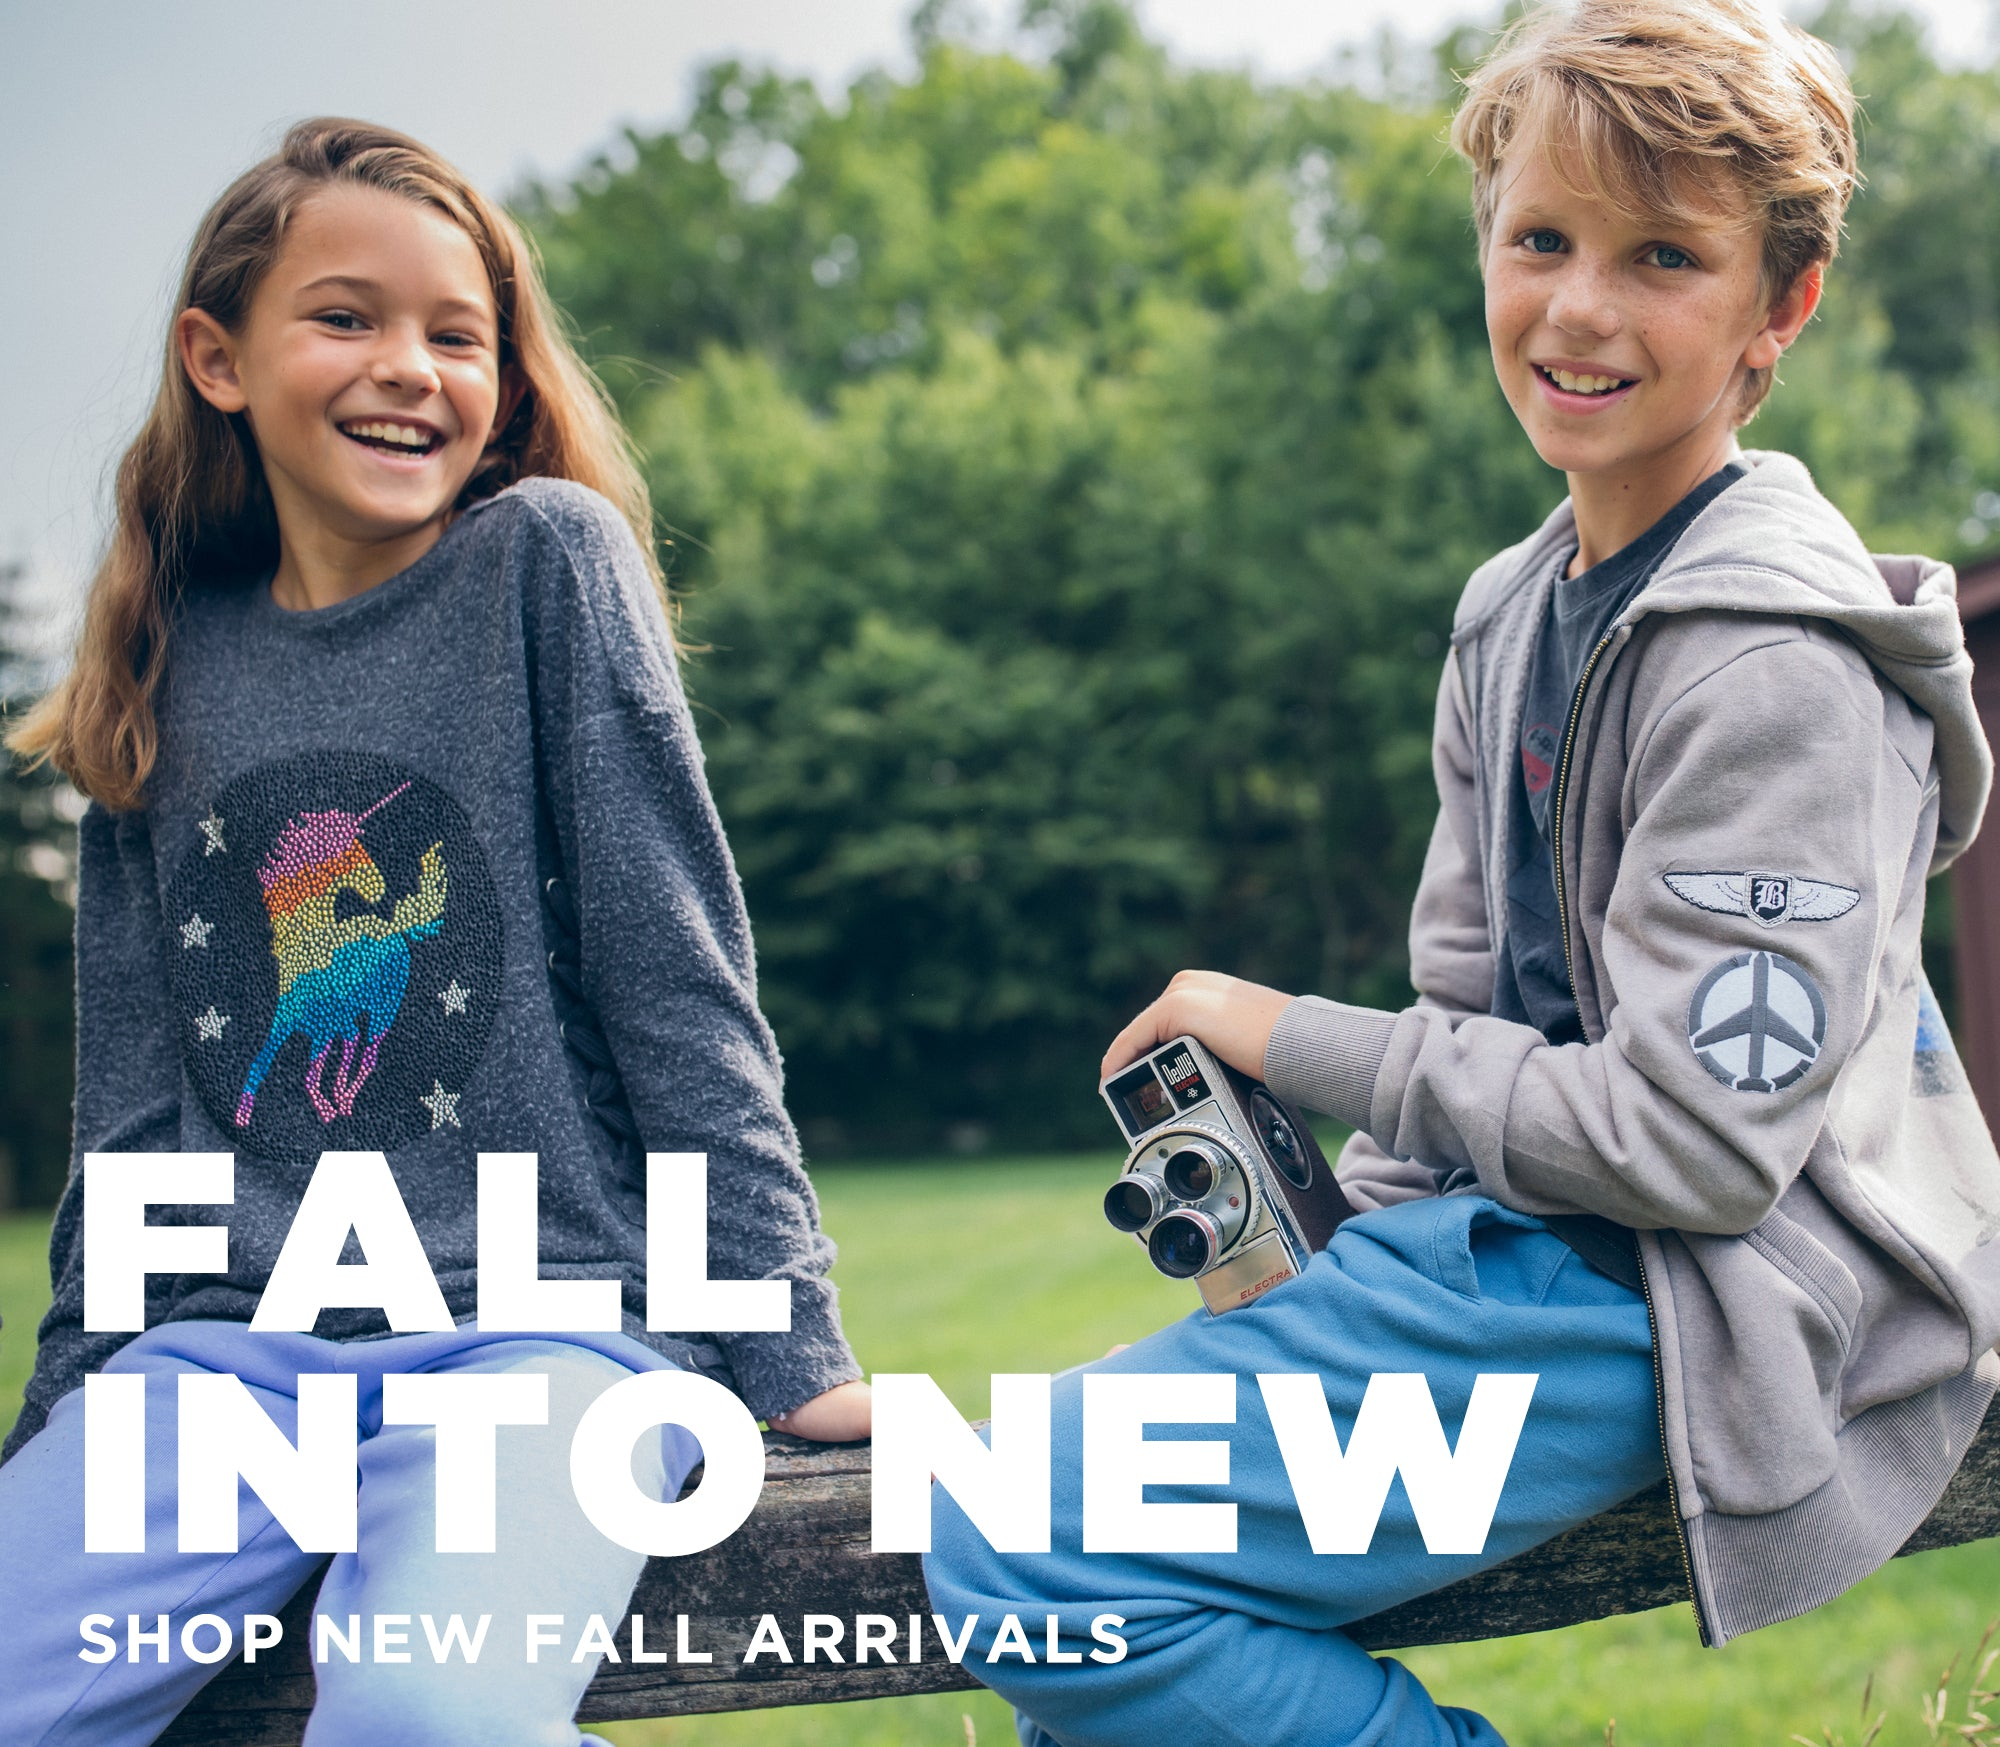 Fall Into New - Shop New Fall Arrivals